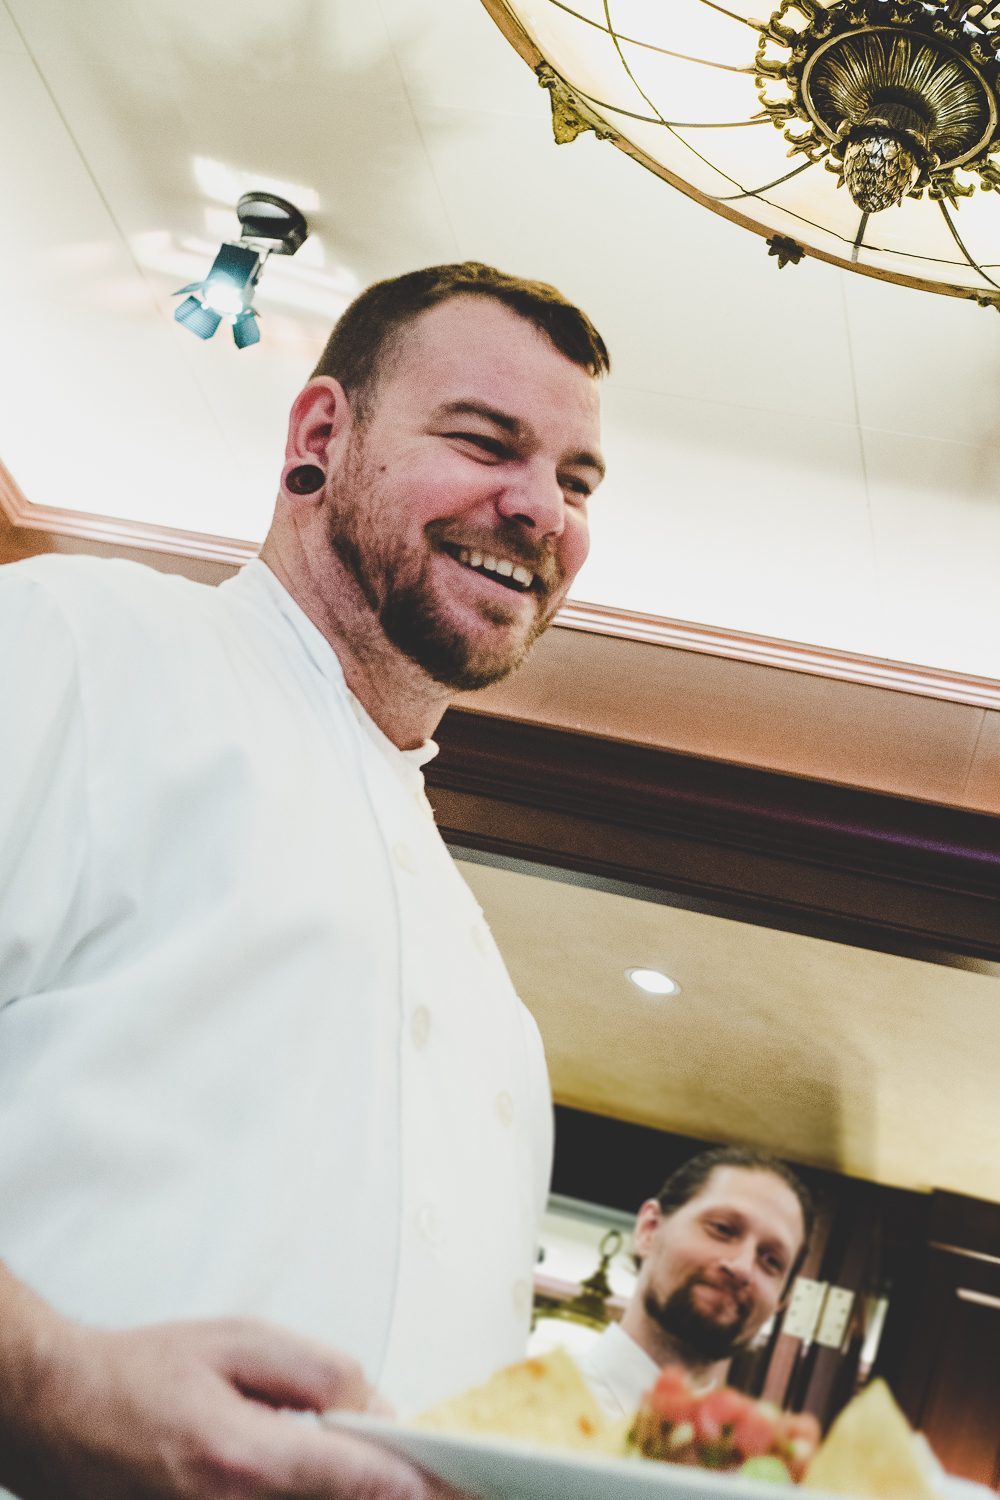 Chef Dan Billo personally serving us with a huge smile!